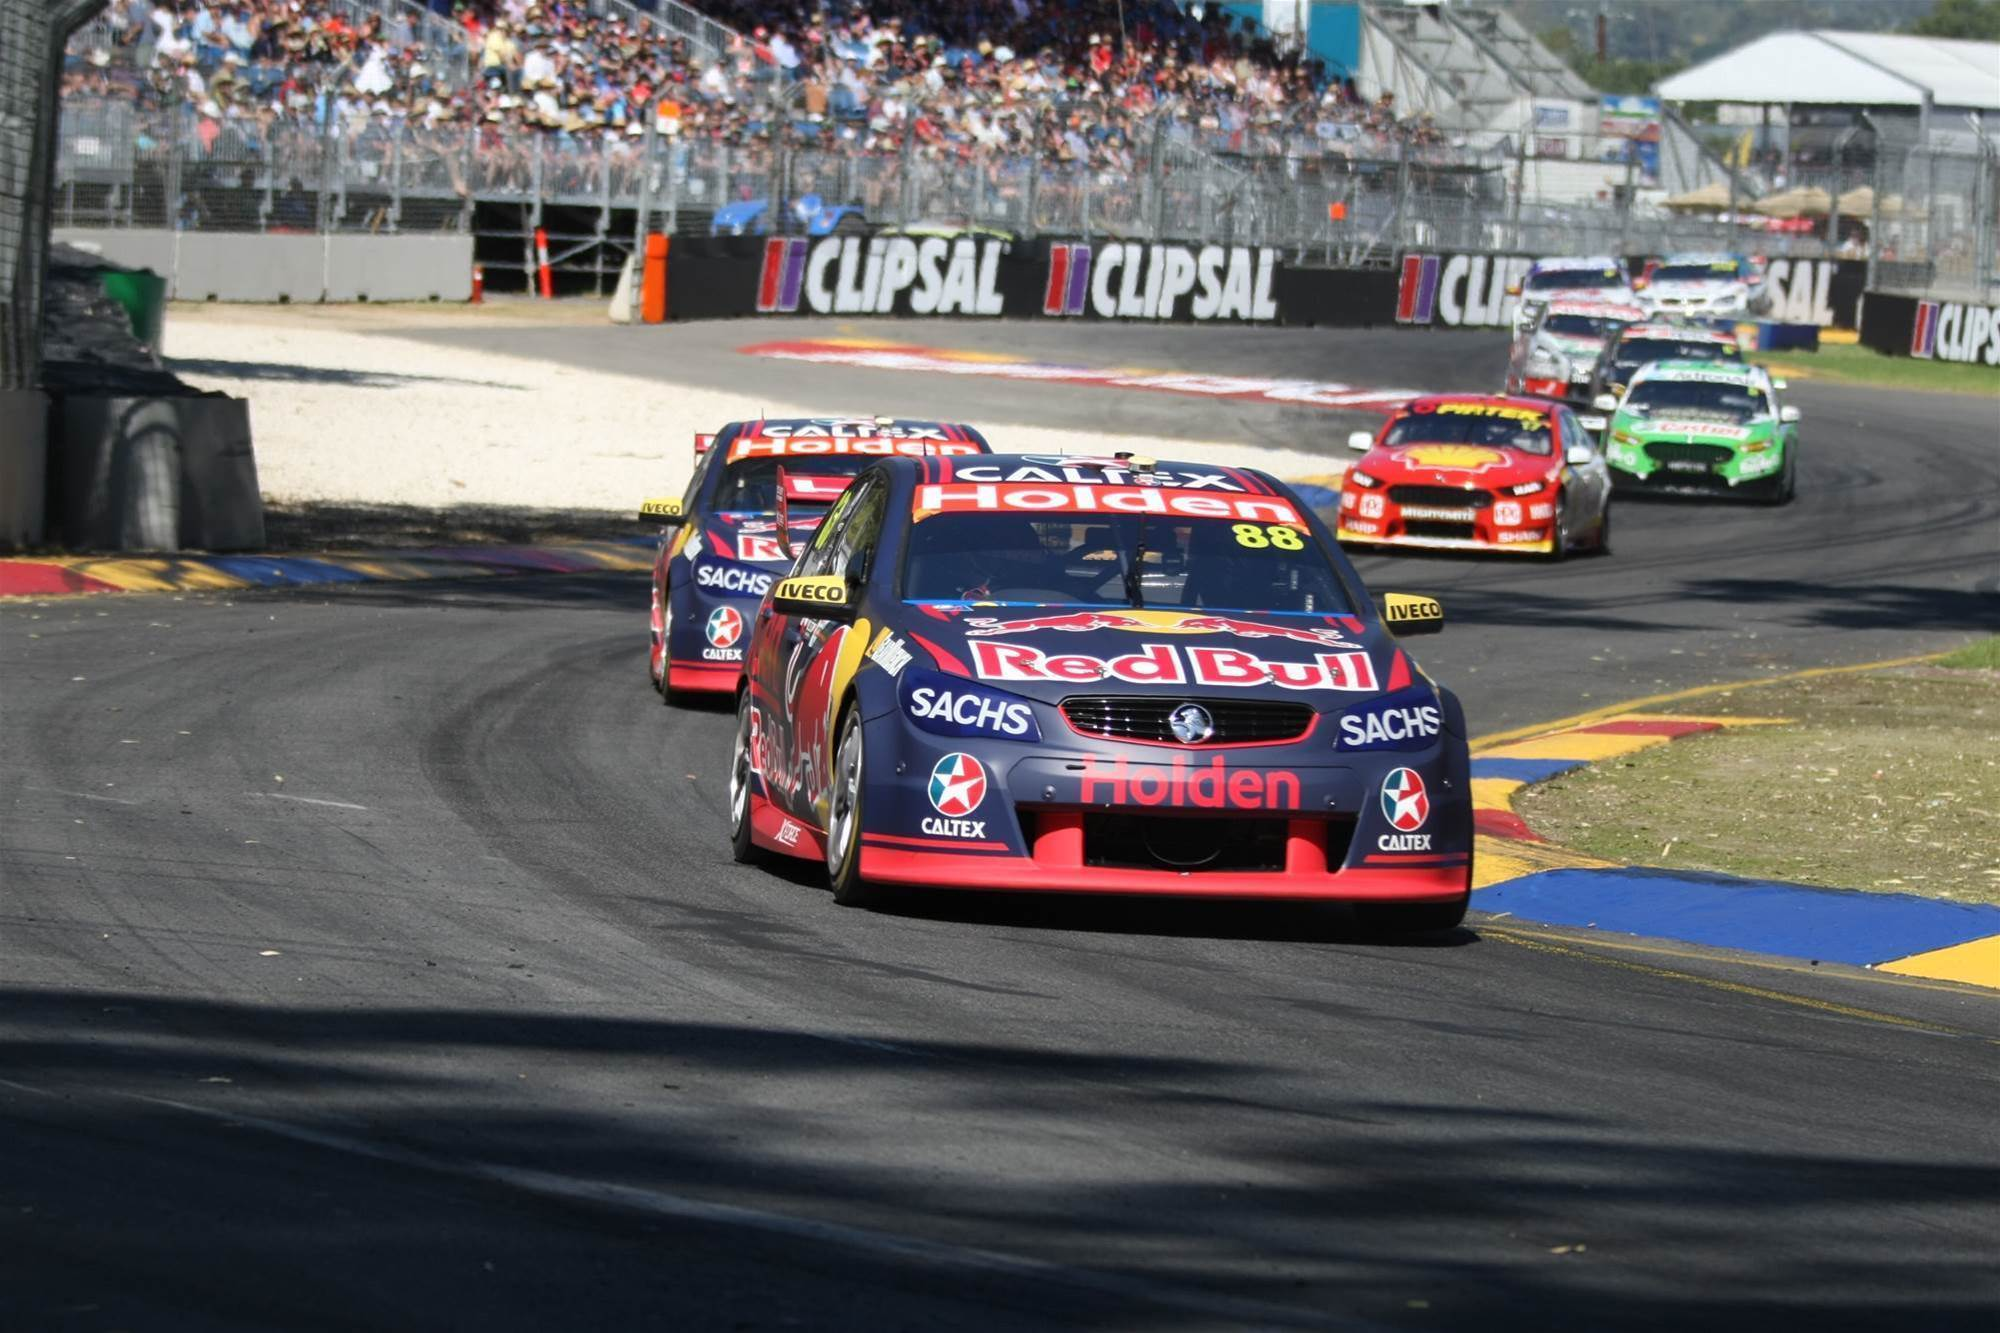 Pics from the Clipsal 500